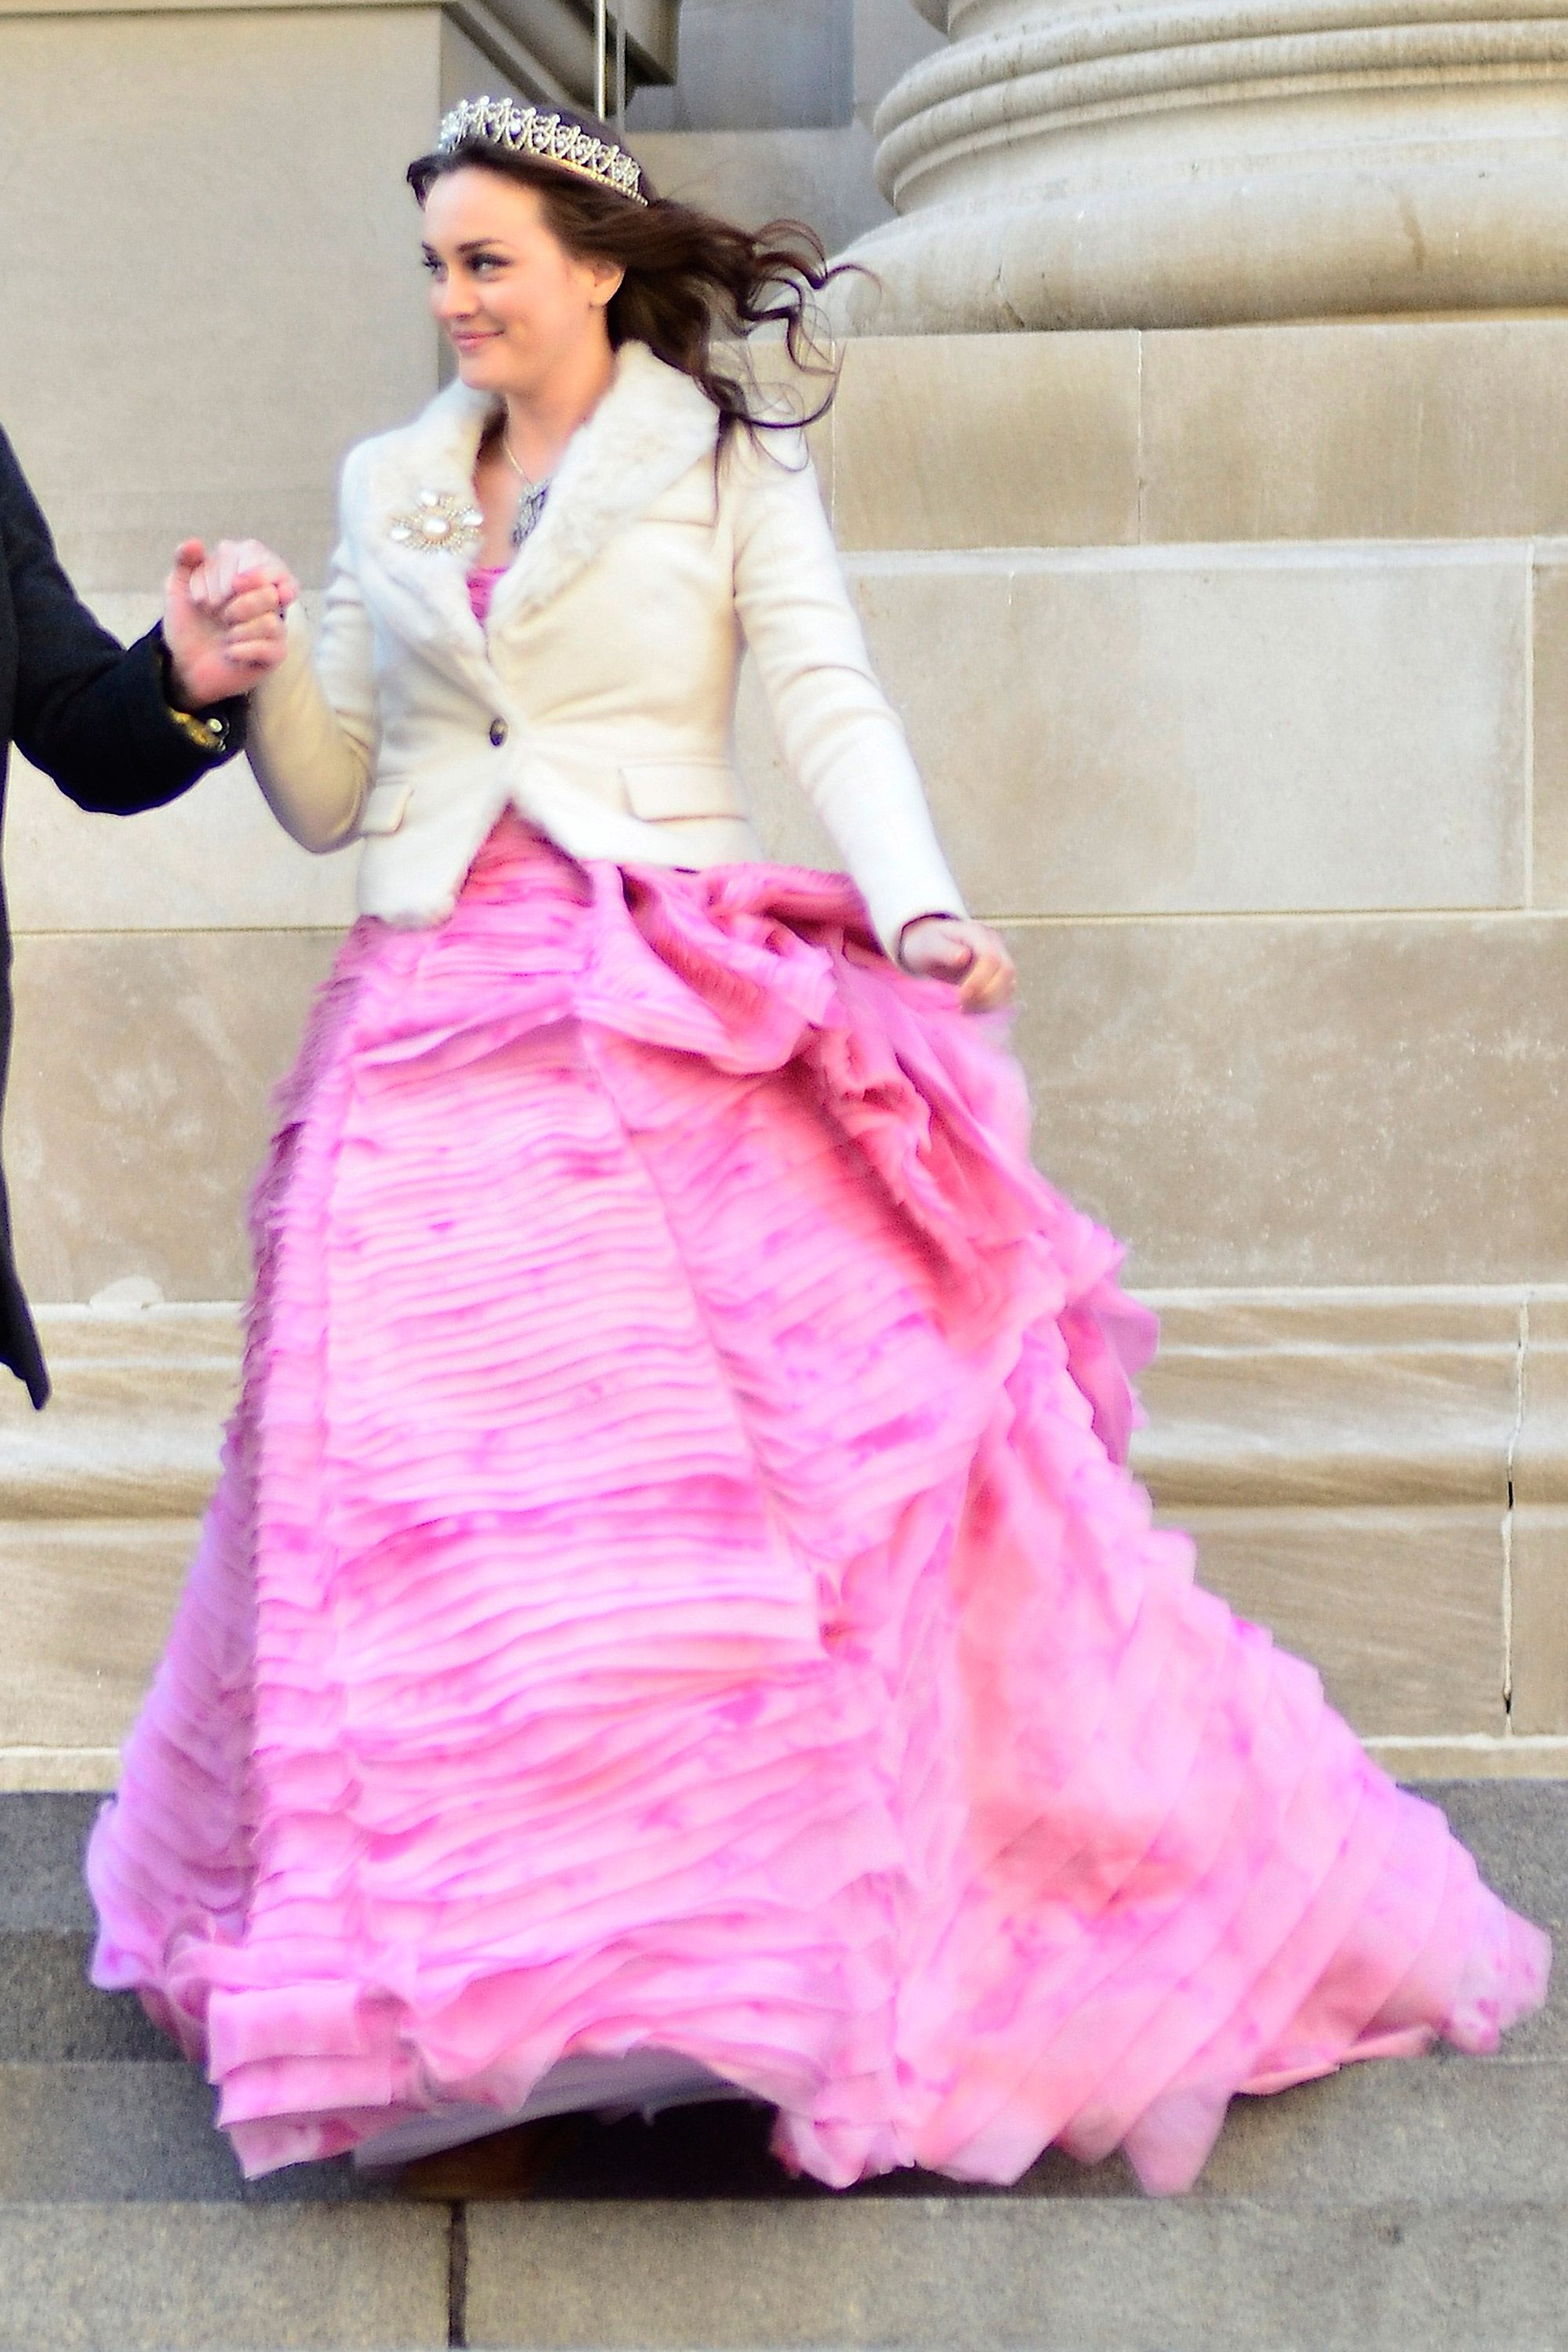 Blair Cornelia Waldorf\'s Best Looks From Gossip Girl